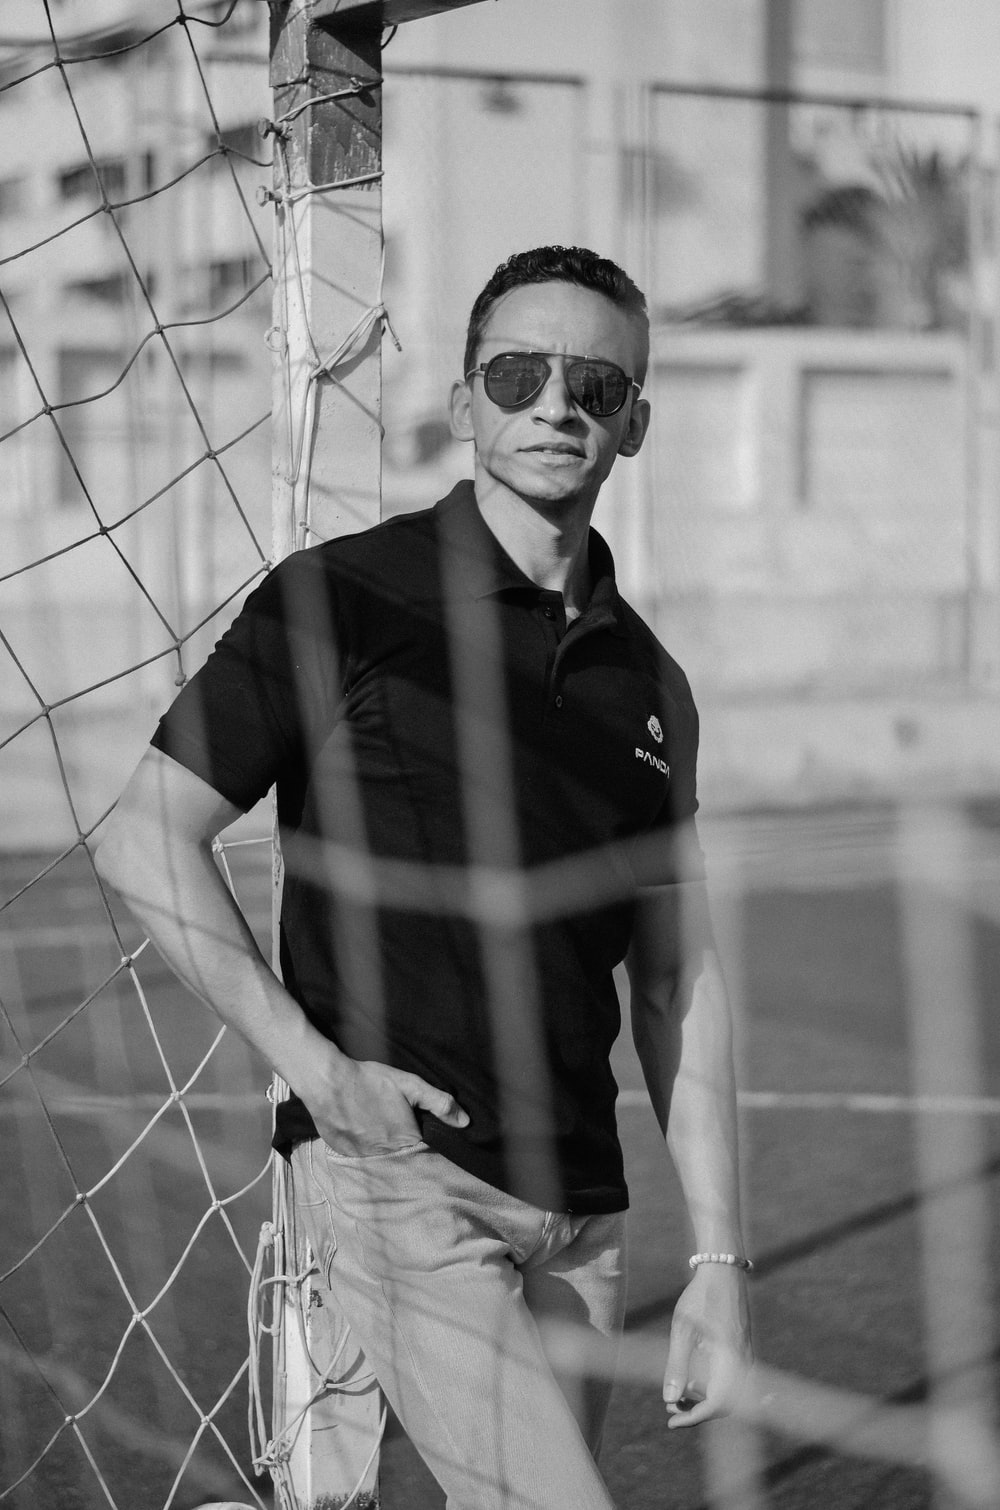 man in black polo shirt wearing sunglasses